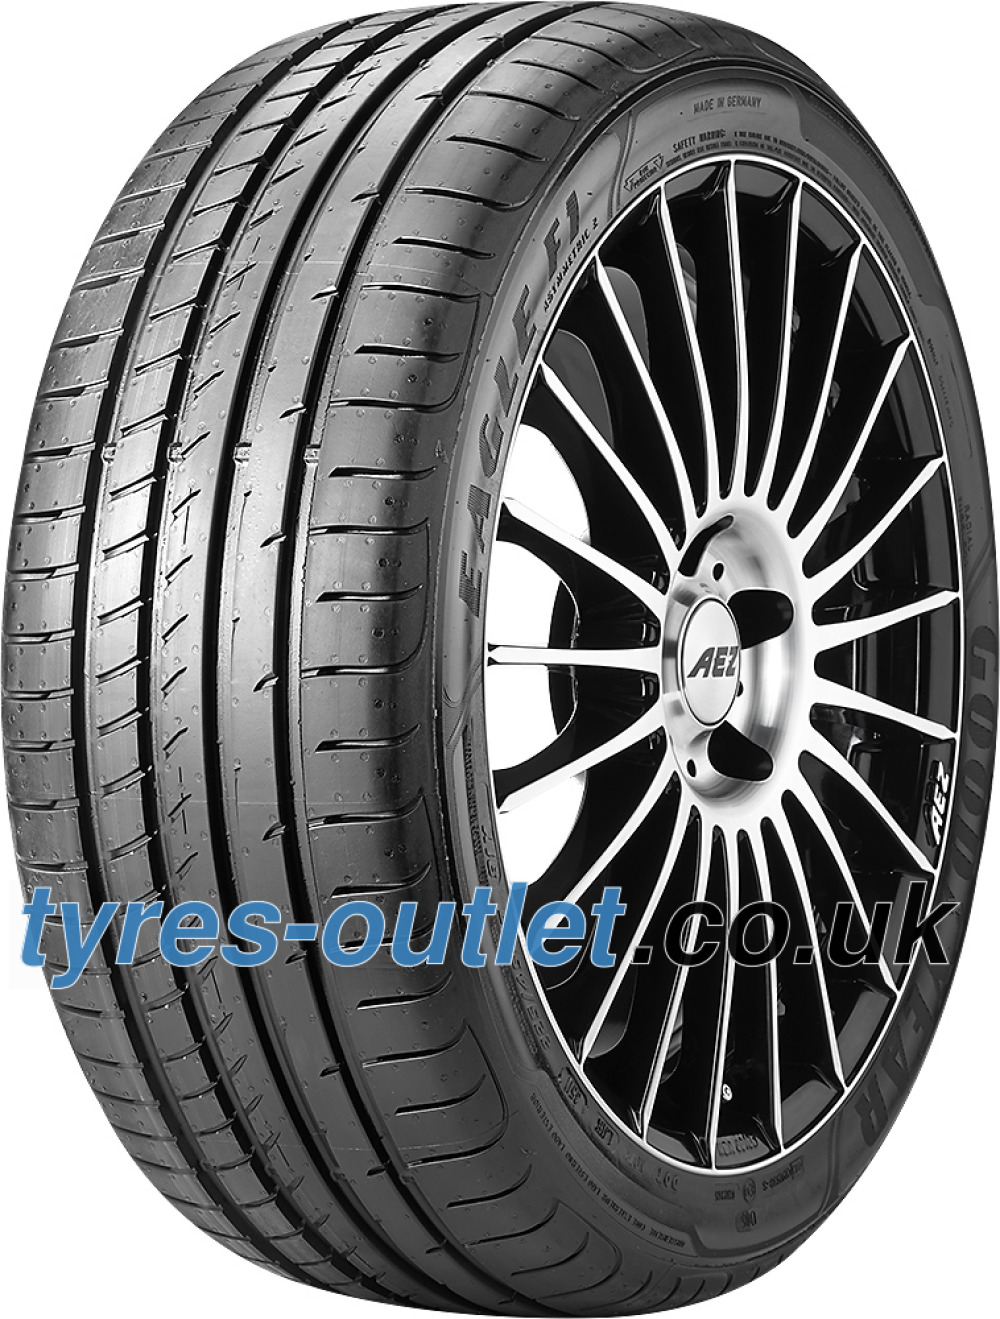 Goodyear Eagle F1 Asymmetric 2 ( 265/45 ZR18 101Y N0, with rim protection (MFS) )